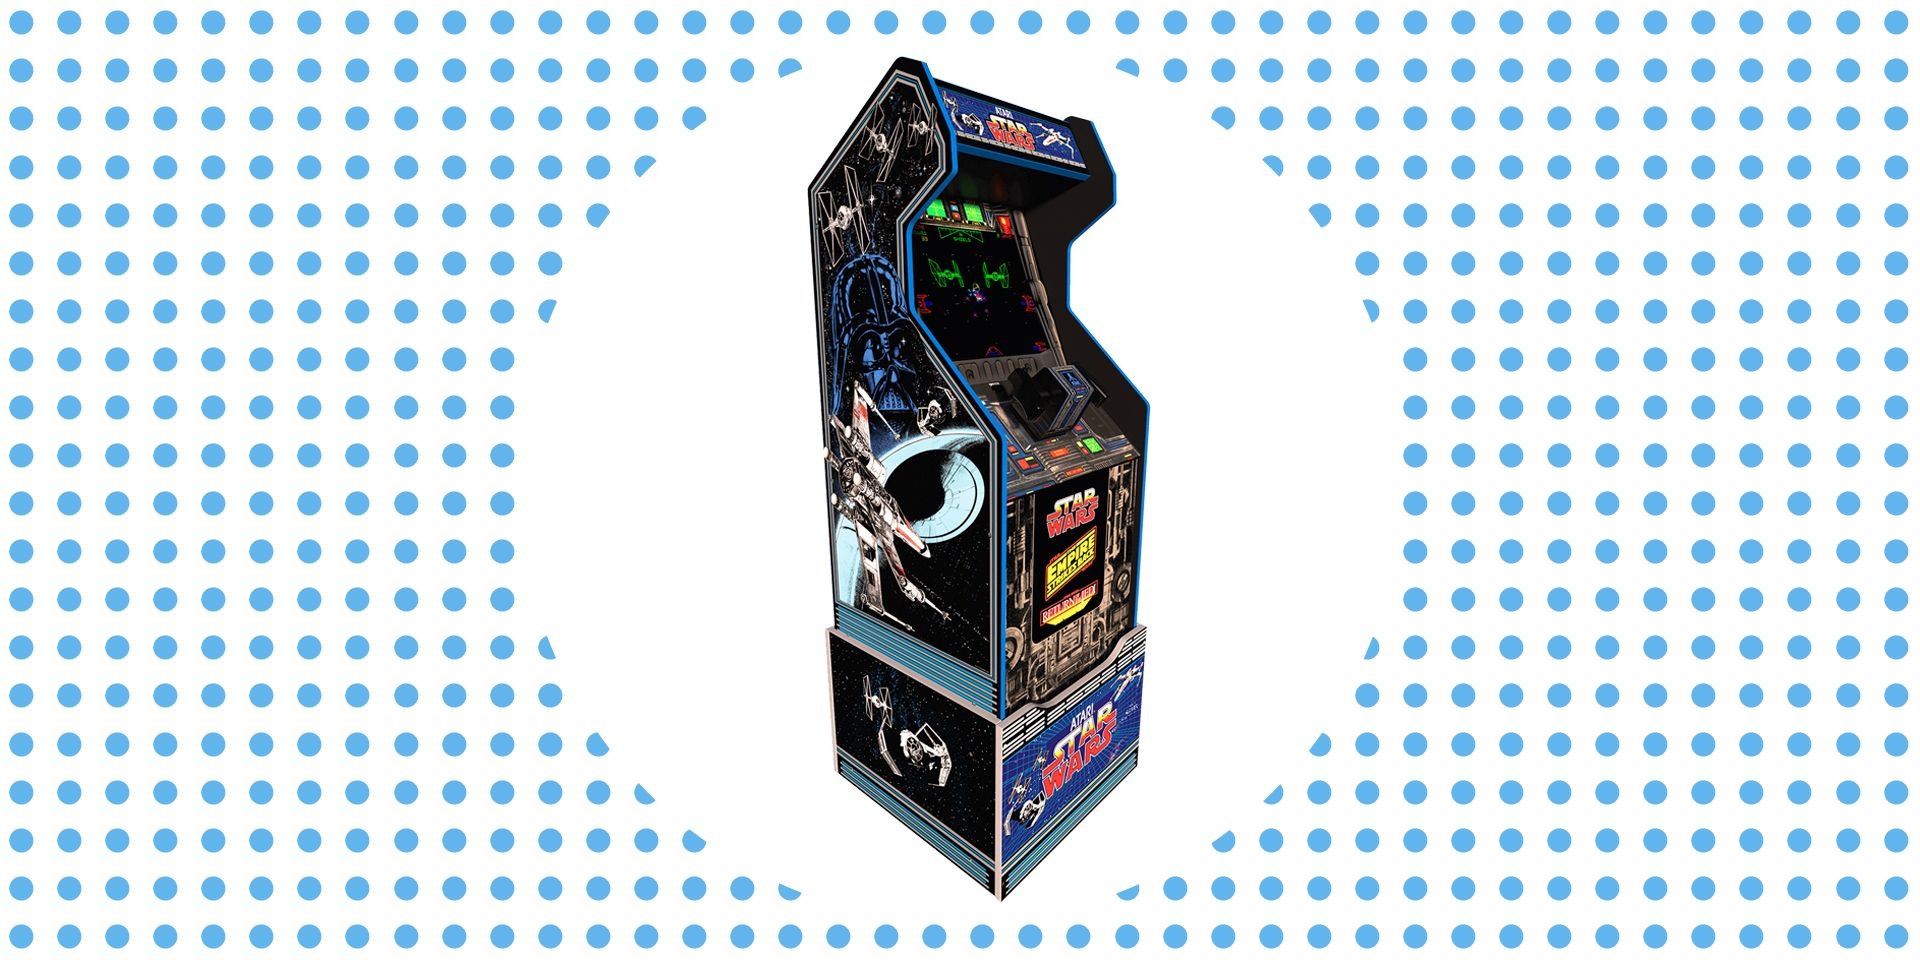 This New Star Wars Arcade Machine Is Available to Pre-Order